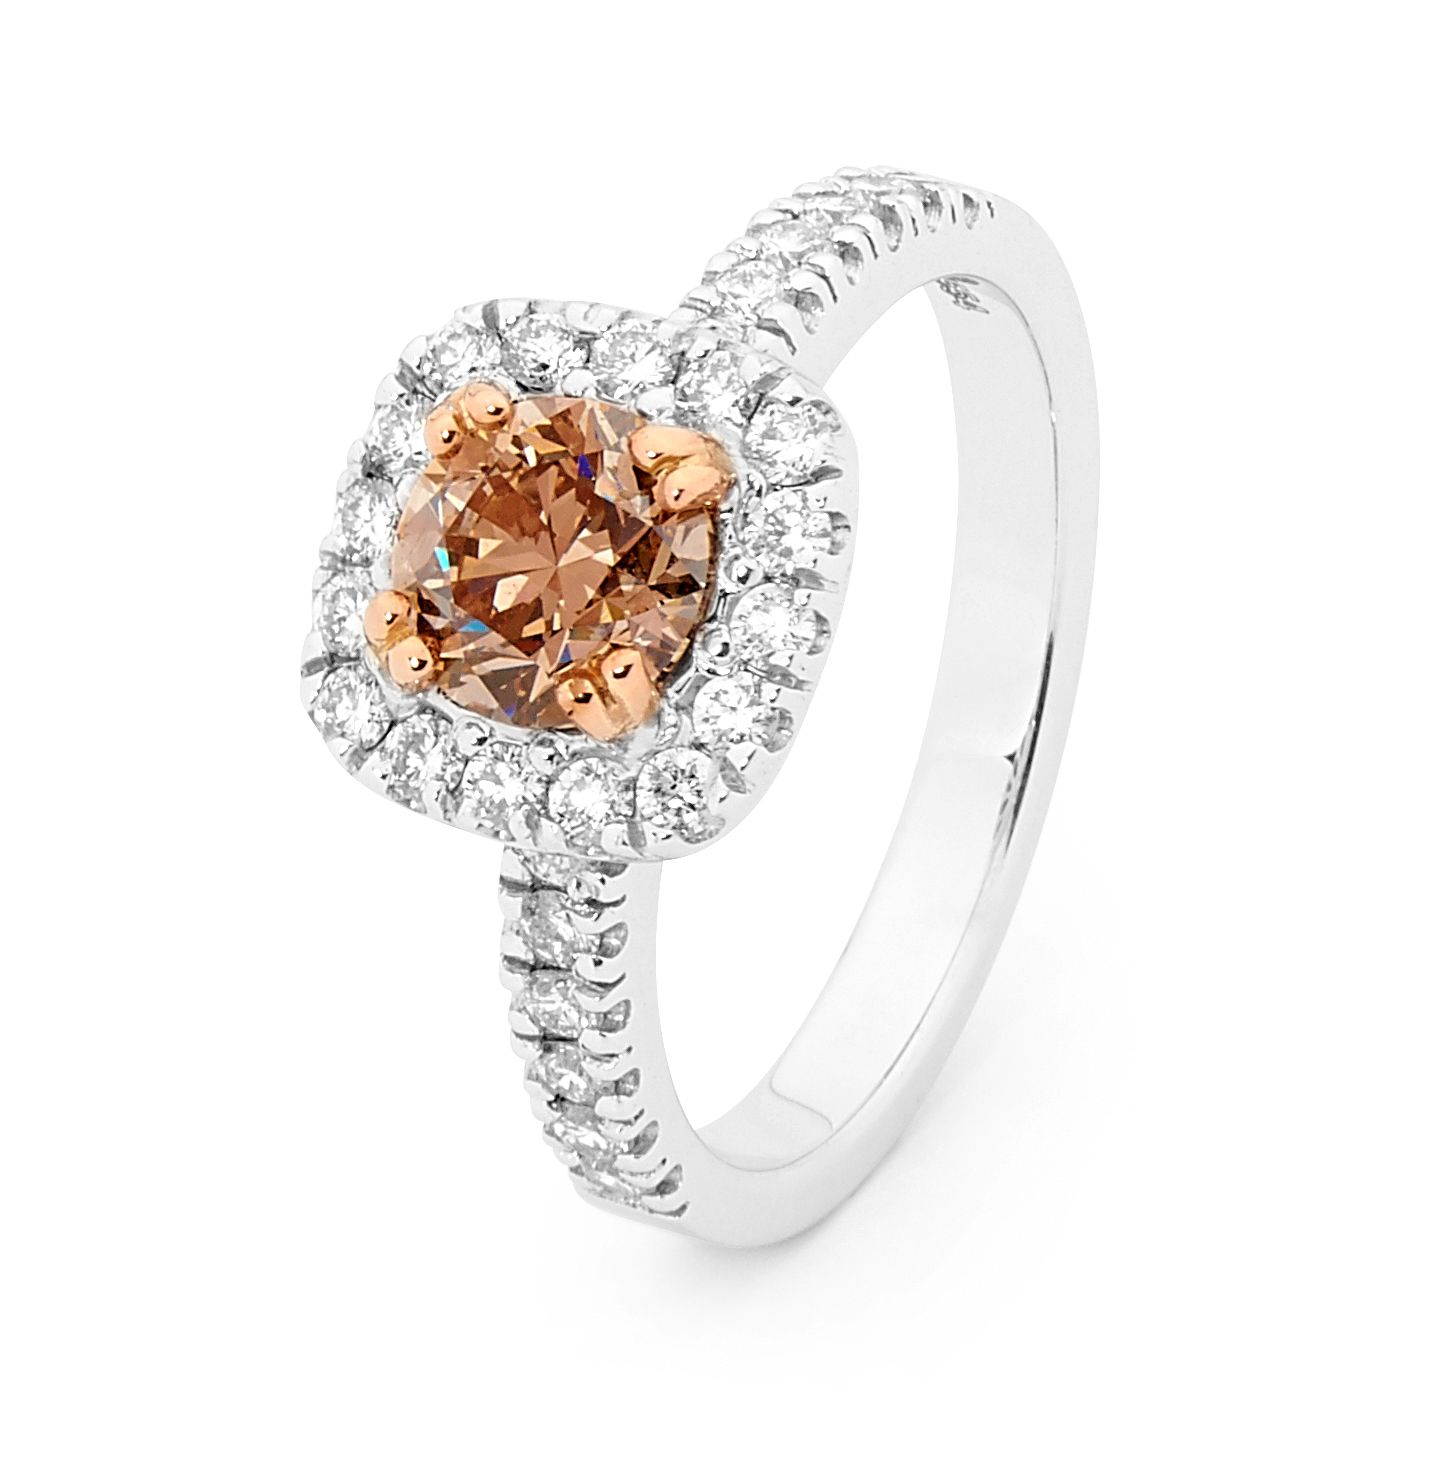 Australian Chocolate Diamonds austchocdiamond on Pinterest